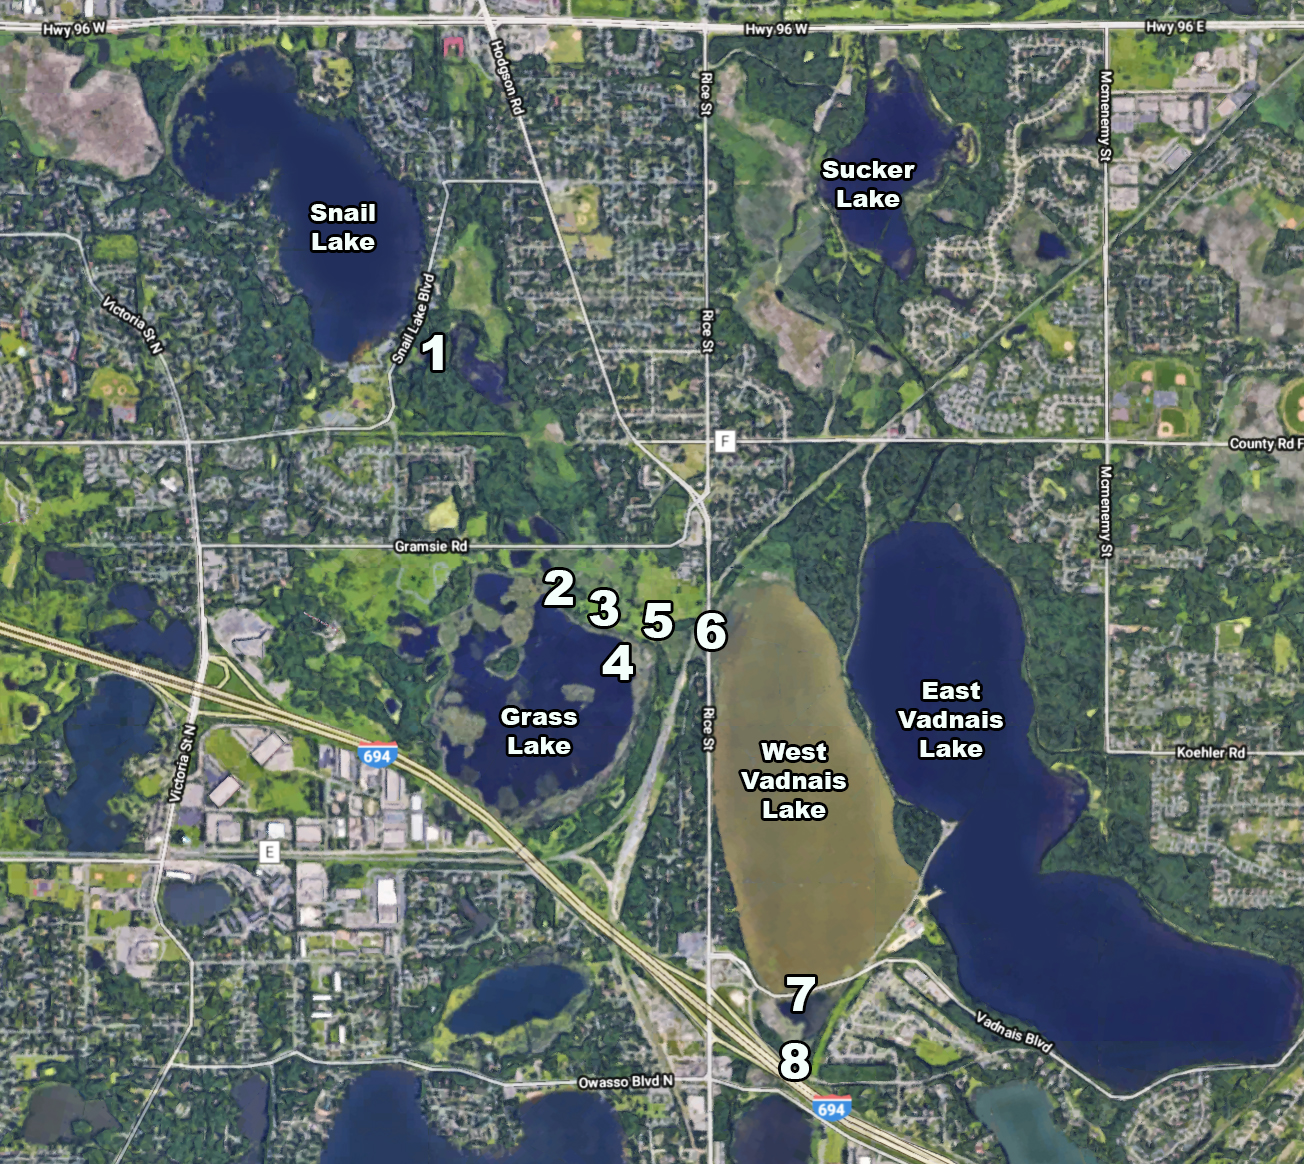 Grass and Snail Lake area map